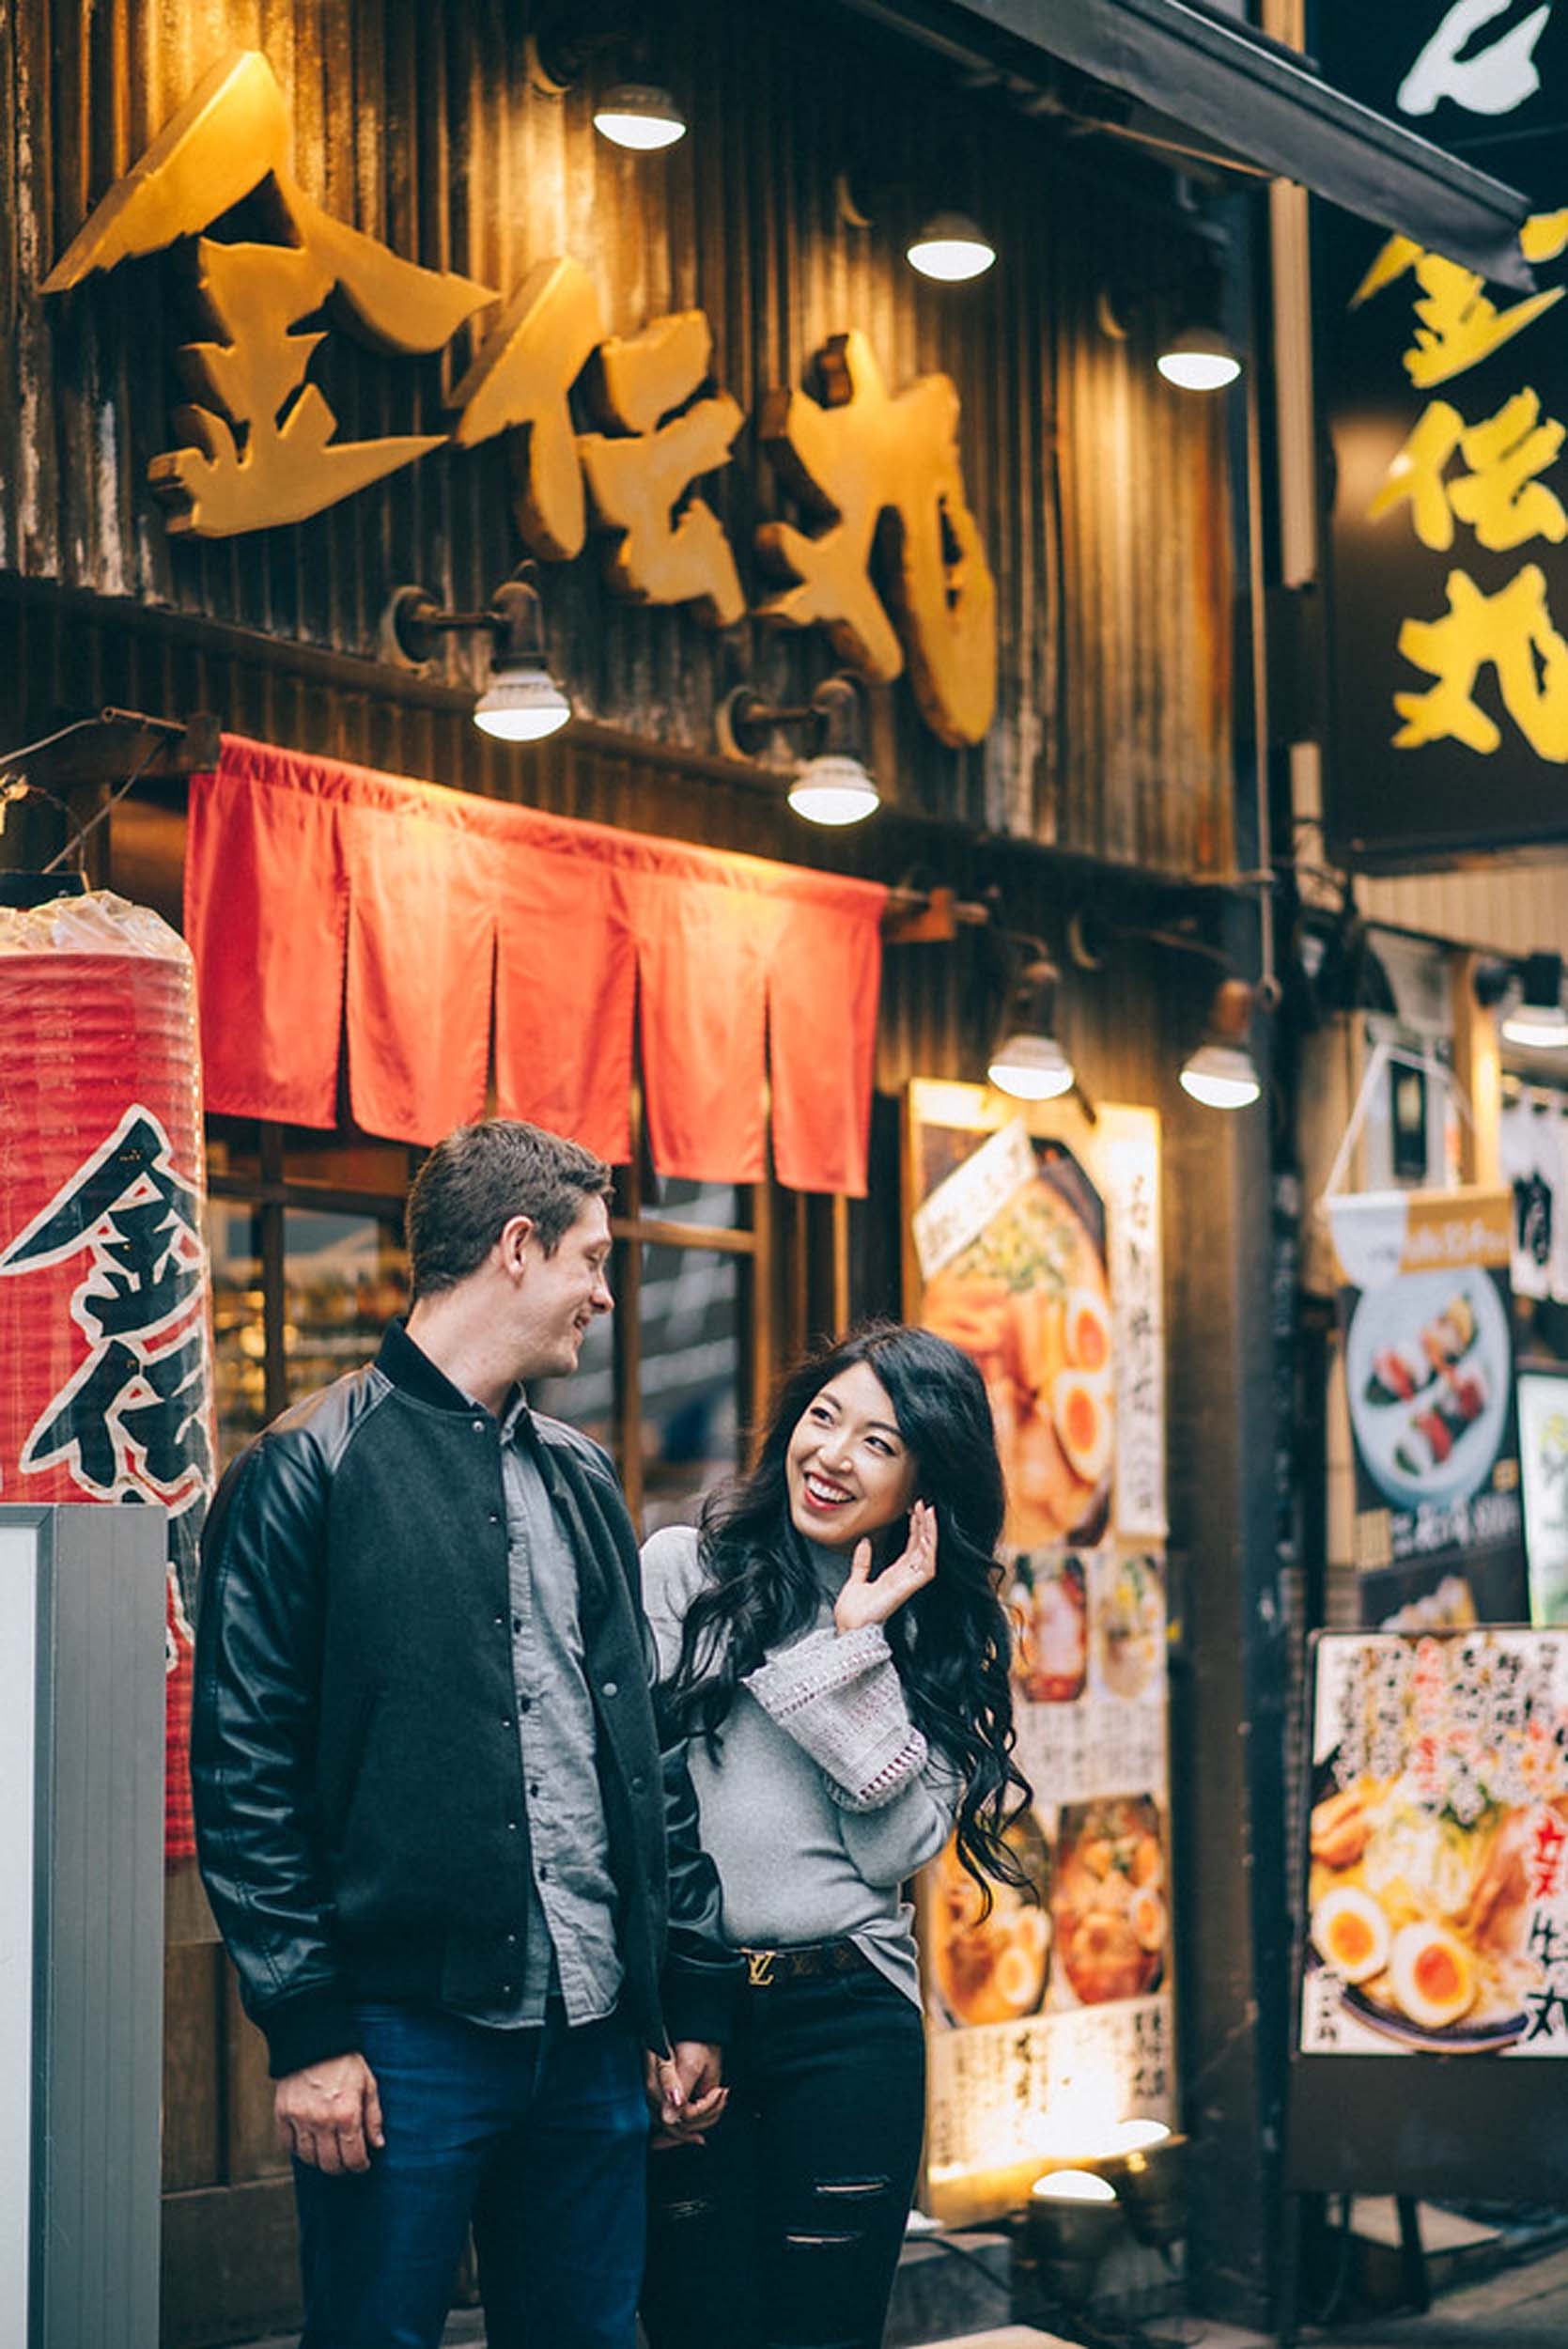 A Bucket List Trip to Japan - Blog | Hire a Vacation Photographer